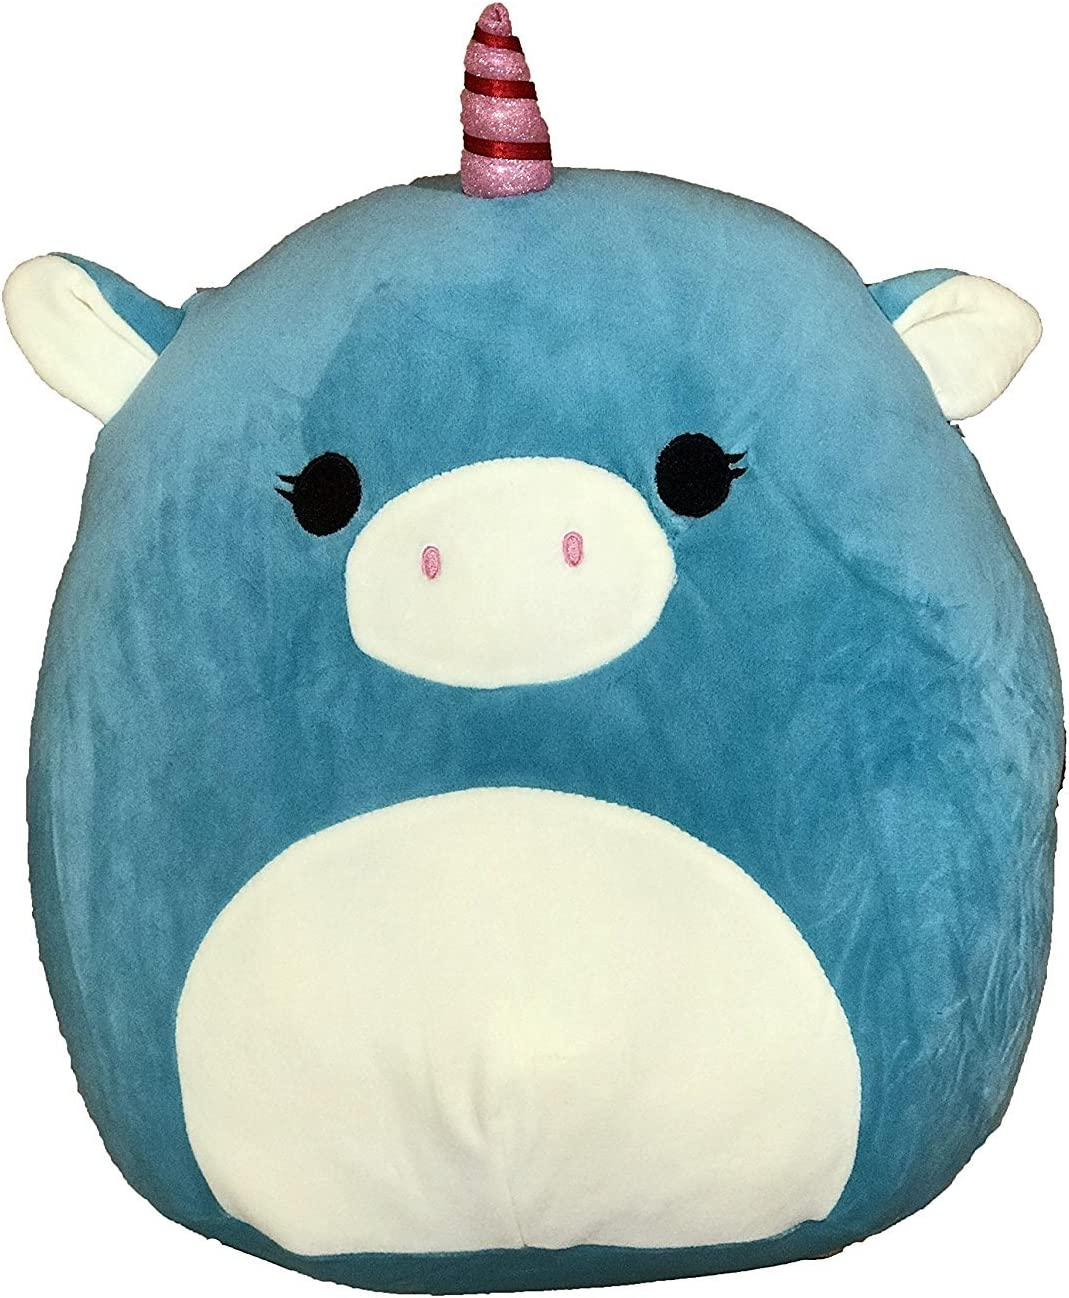 """Squishmallow Kellytoy 5/"""" Sharie the Sloth Super Soft Plush Toy Pillow Pet Anim"""